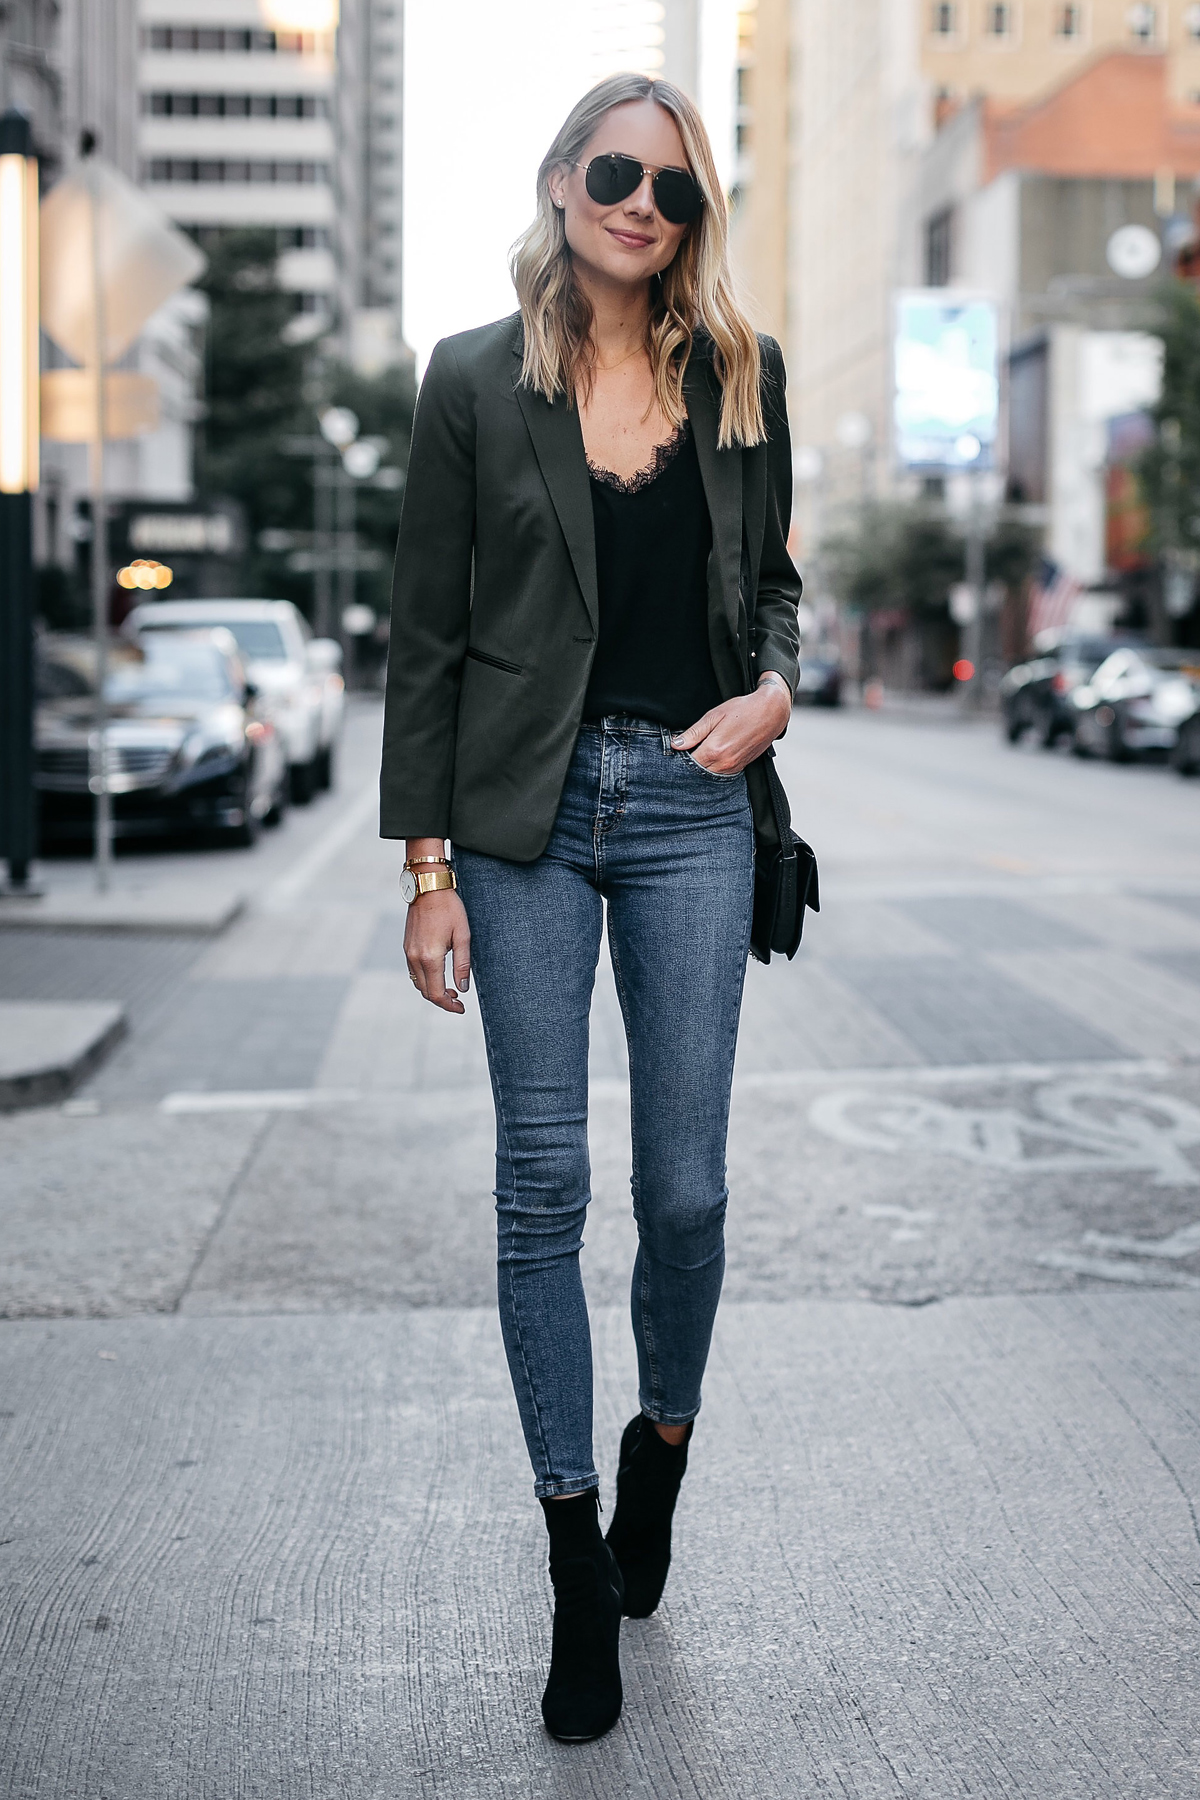 Blonde Woman Wearing Everlane Olive Green Blazer Anine Bing Black Lace Cami Topshop Denim Skinny Jeans Club Monaco Black Booties Fashion Jackson Dallas Blogger Fashion Blogger Street Style